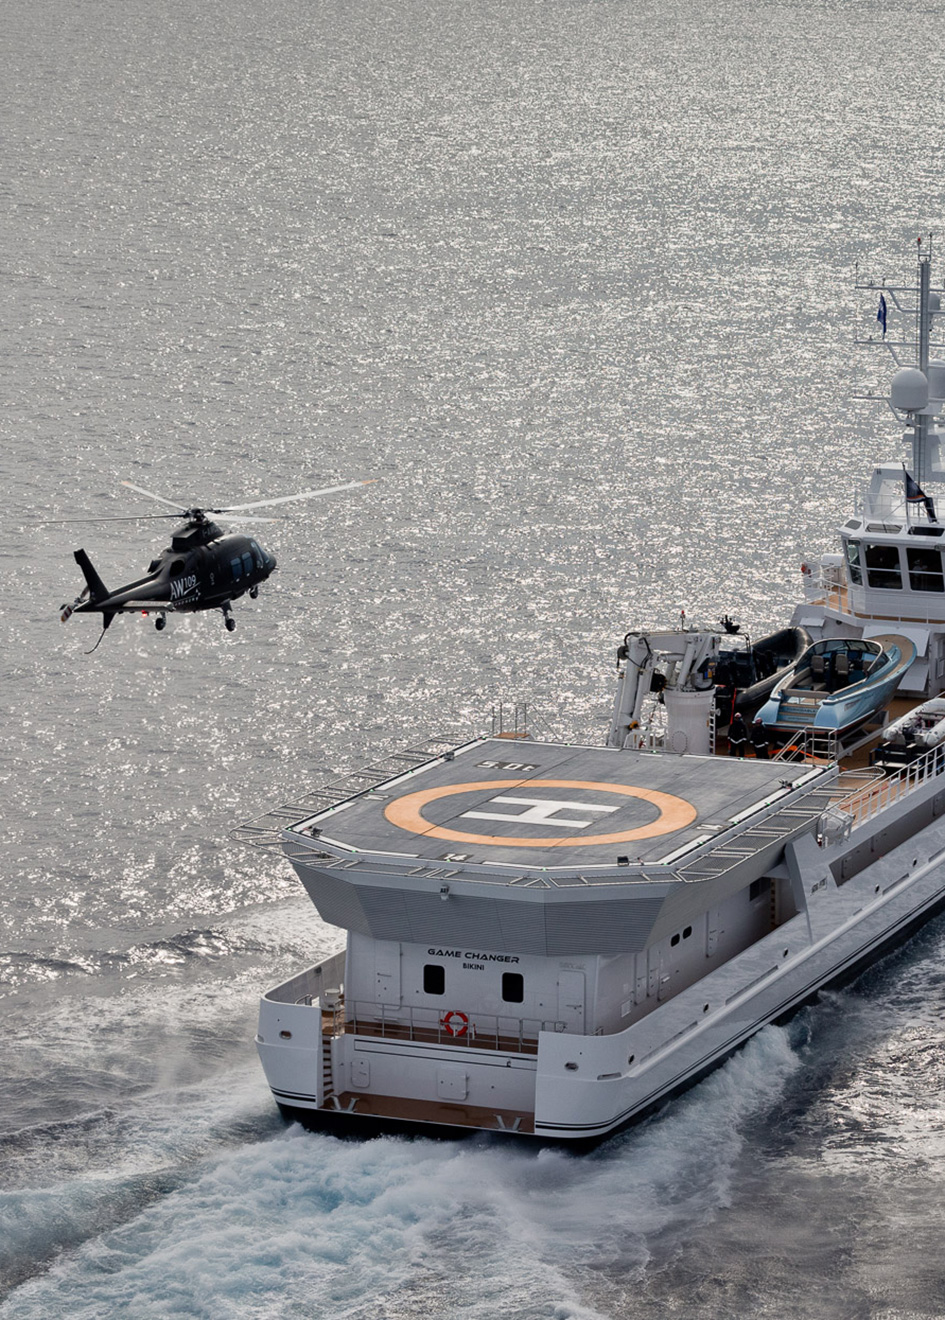 helicopter-landing-on-the-damen-superyacht-support-vessel-game-changer-credit-jeff-brown-breed-media